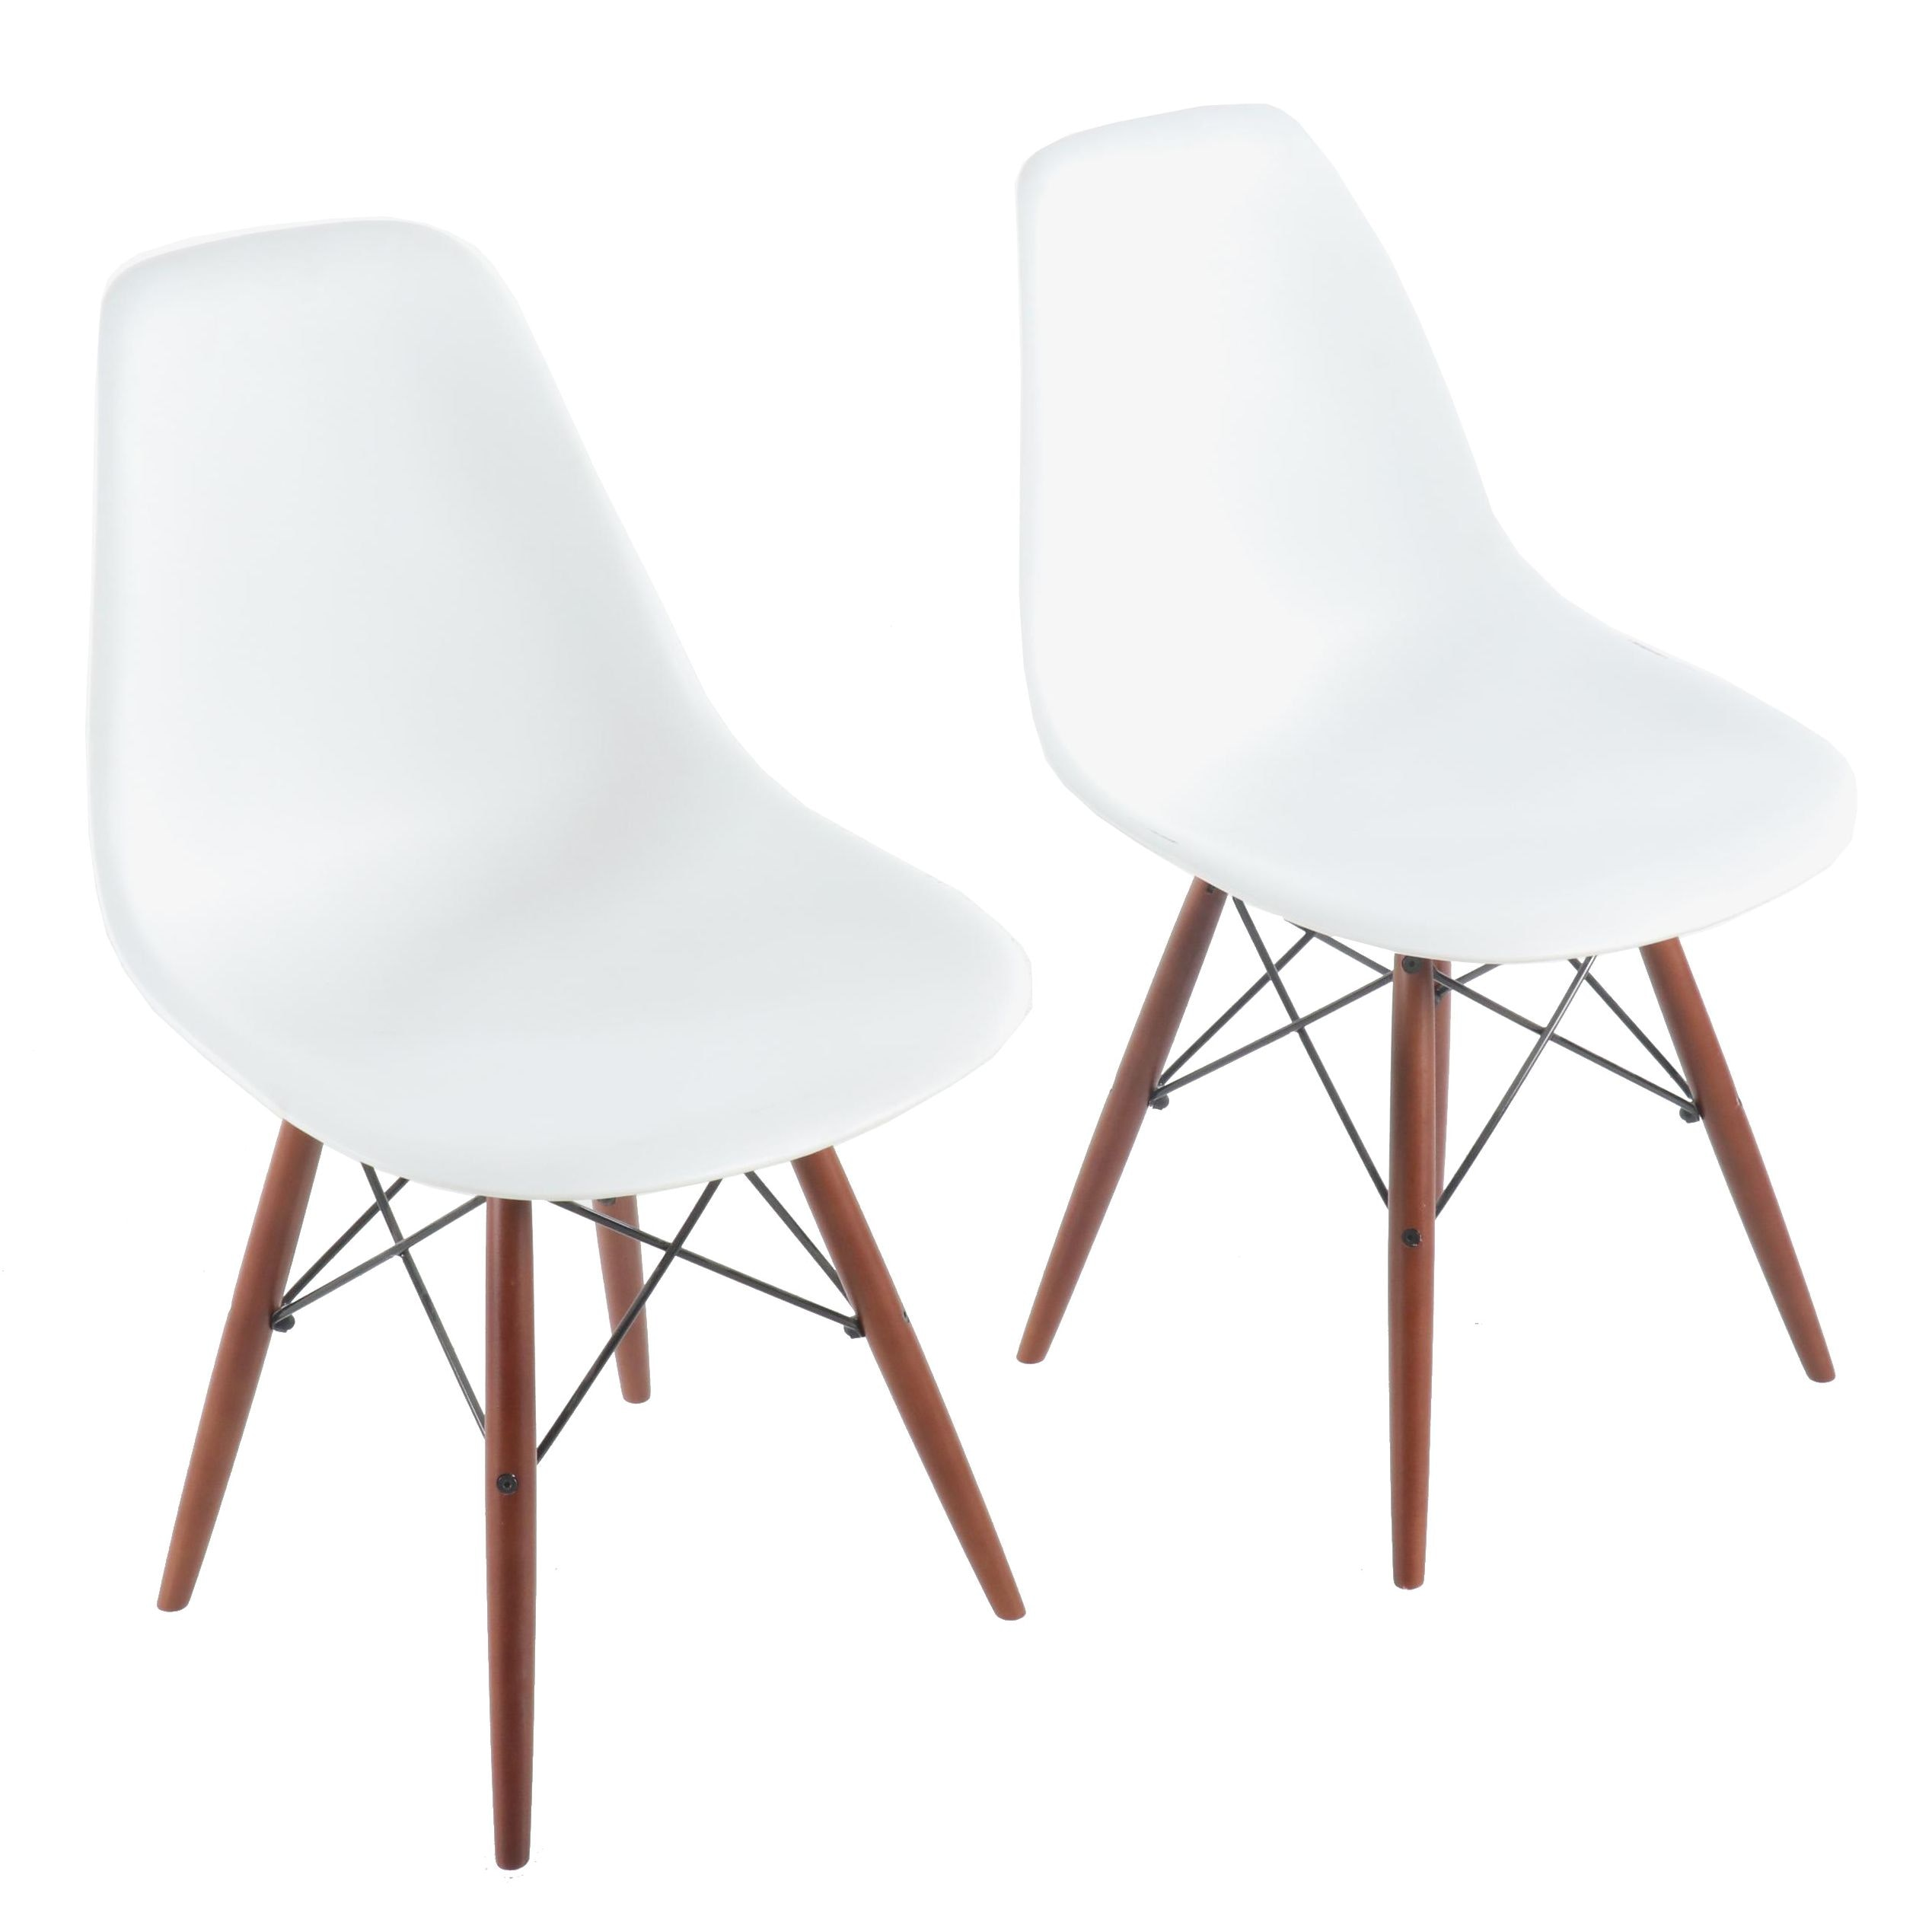 Eames Style Molded Plastic Dowel-Leg Side Chairs